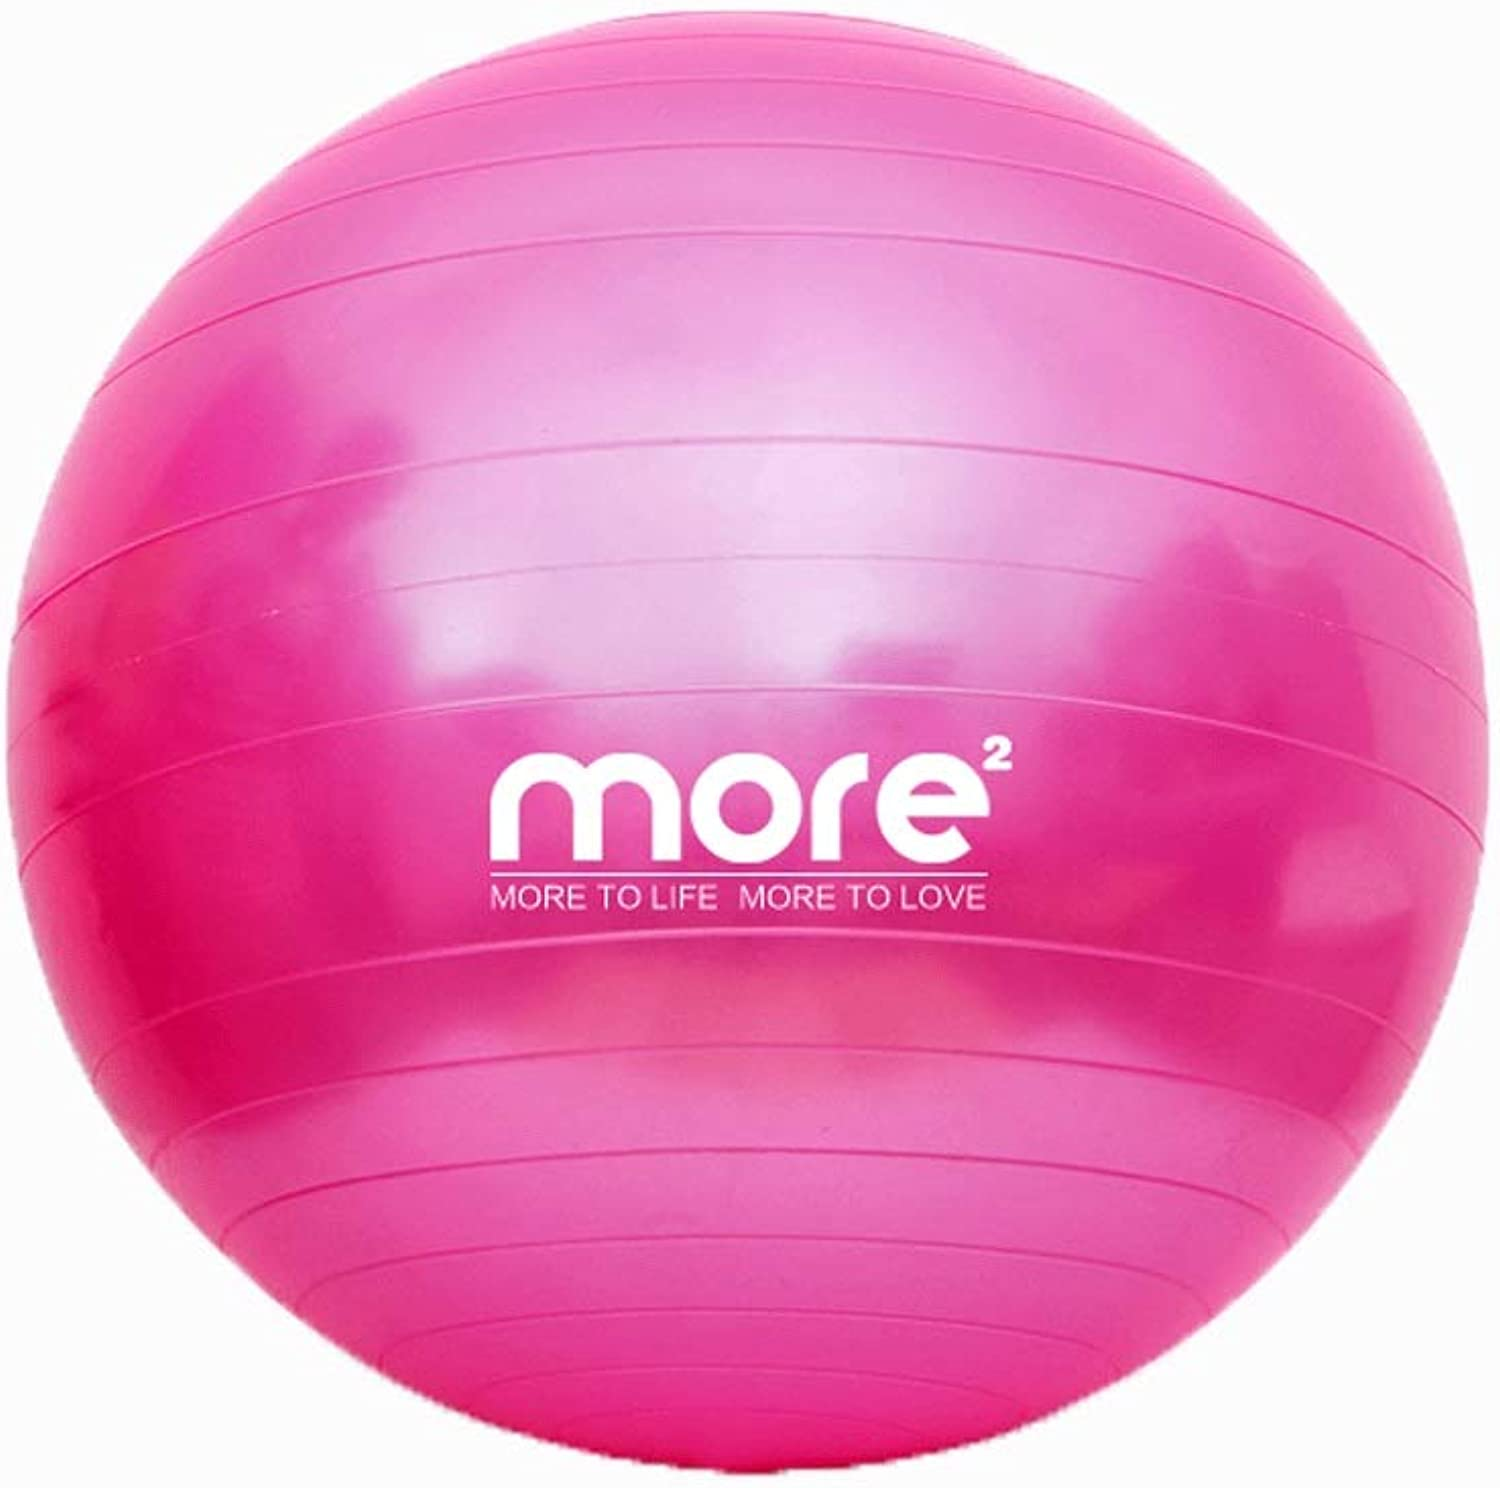 Yoga Ball Thicken ExplosionProof Gym Ball Midwifery Lose Weight Balance Ball Fitness Sports and Fitness Ball (color   Purple, Size   55CM)